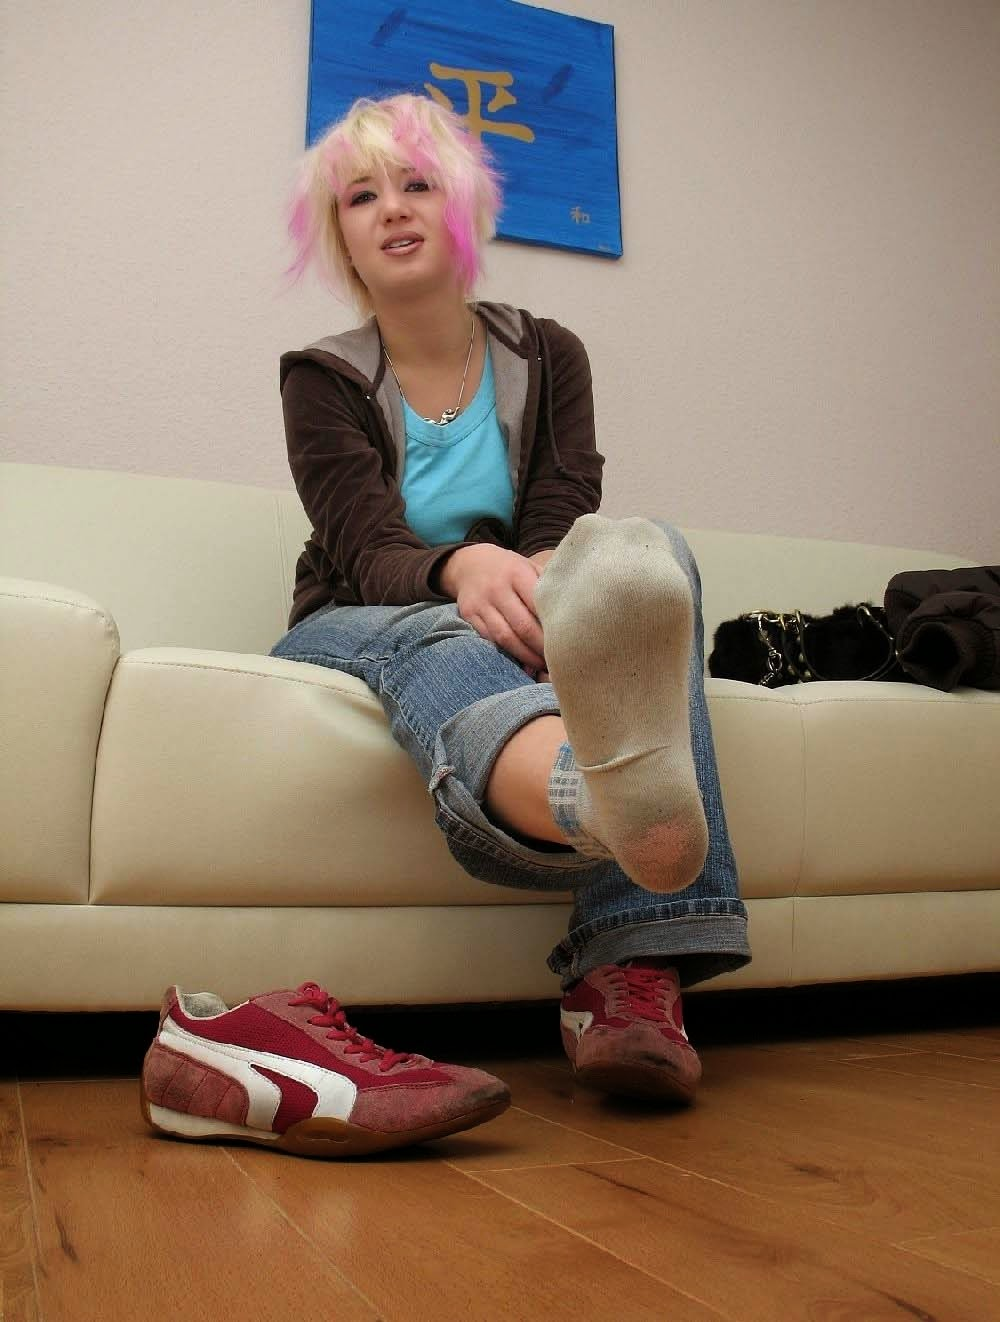 Her Dirty Teen Socks Sock 112